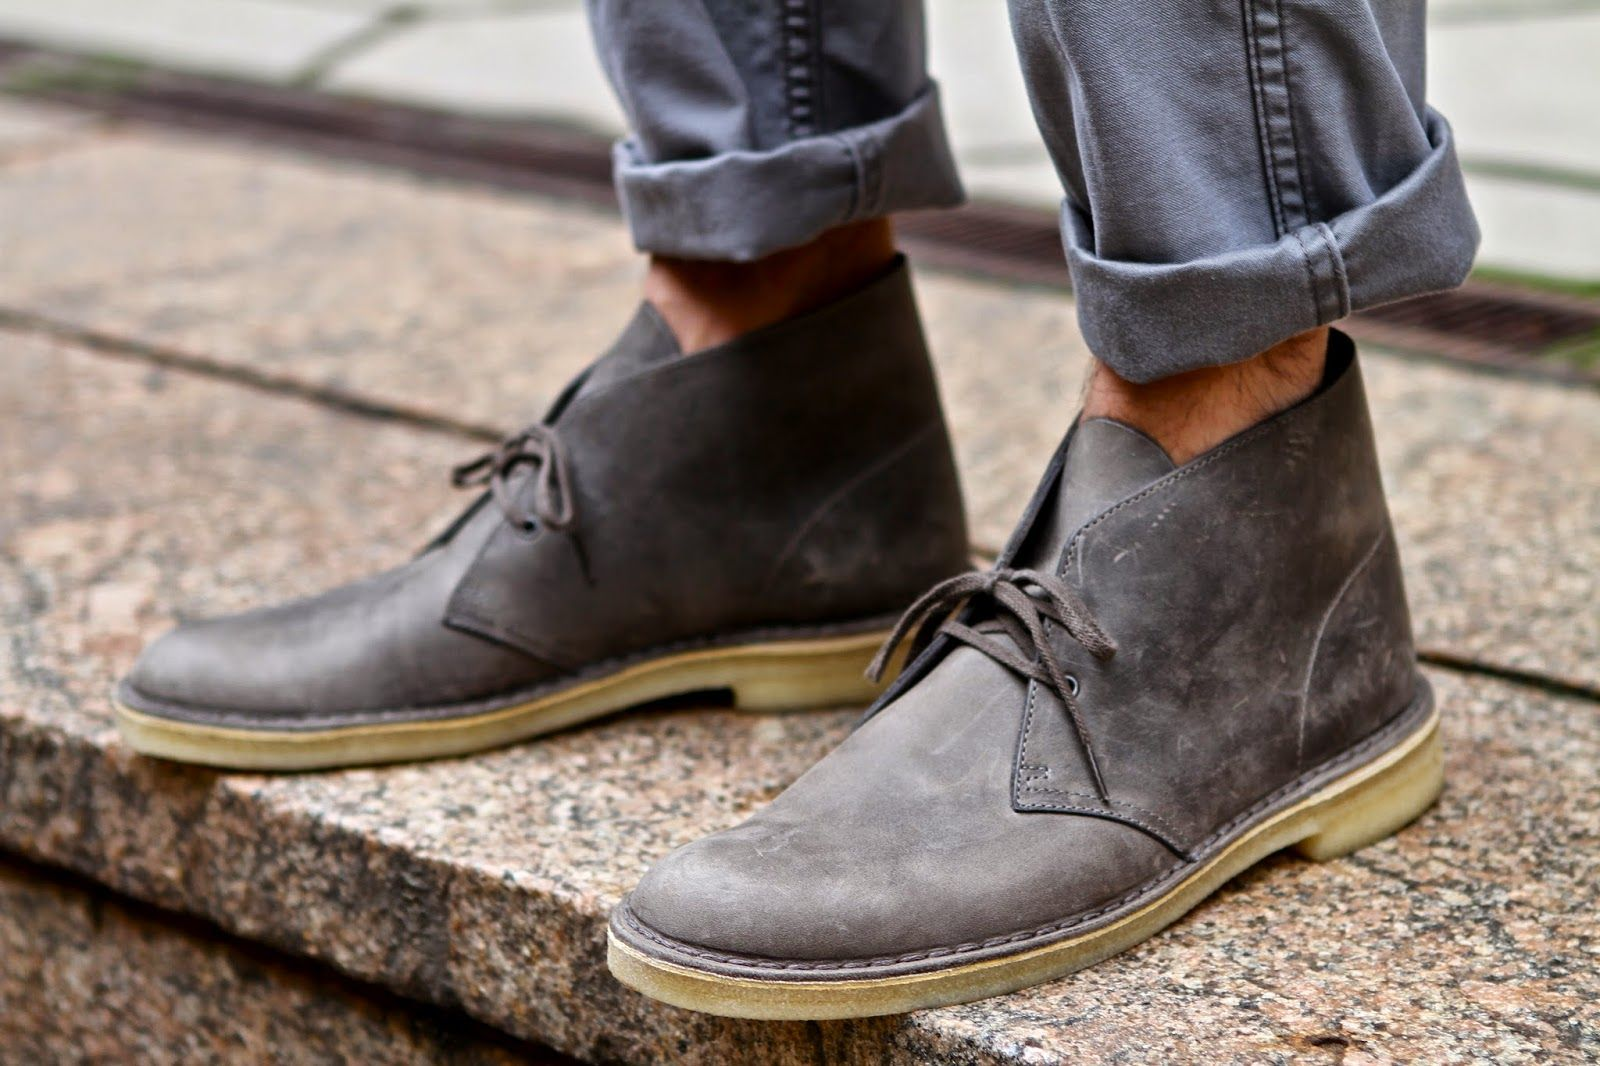 932f3dd7eddf17 Clarks Men's Bushacre 2 Desert Boots. Trendy, good-looking and all that at  an amazing price! Just from our partner, Amazon